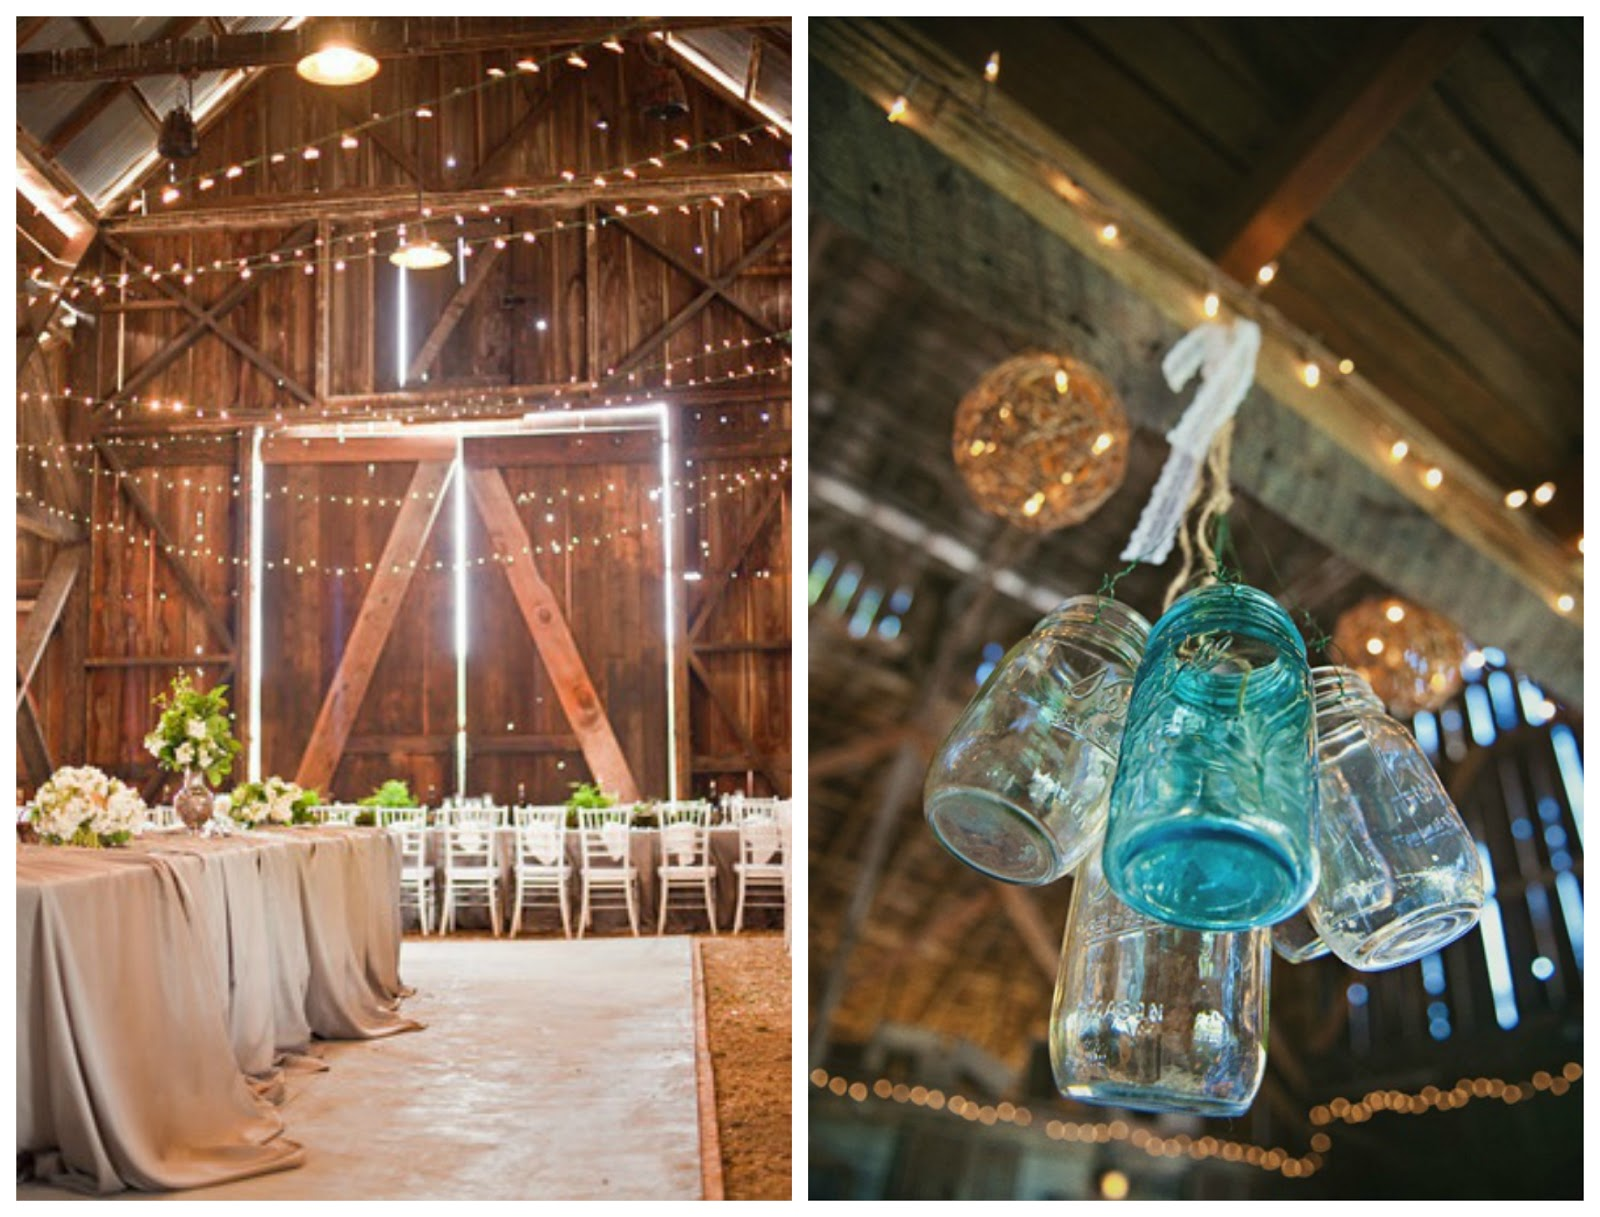 JessicaNdesigns Wedding Inspiration Rustic Barn Party